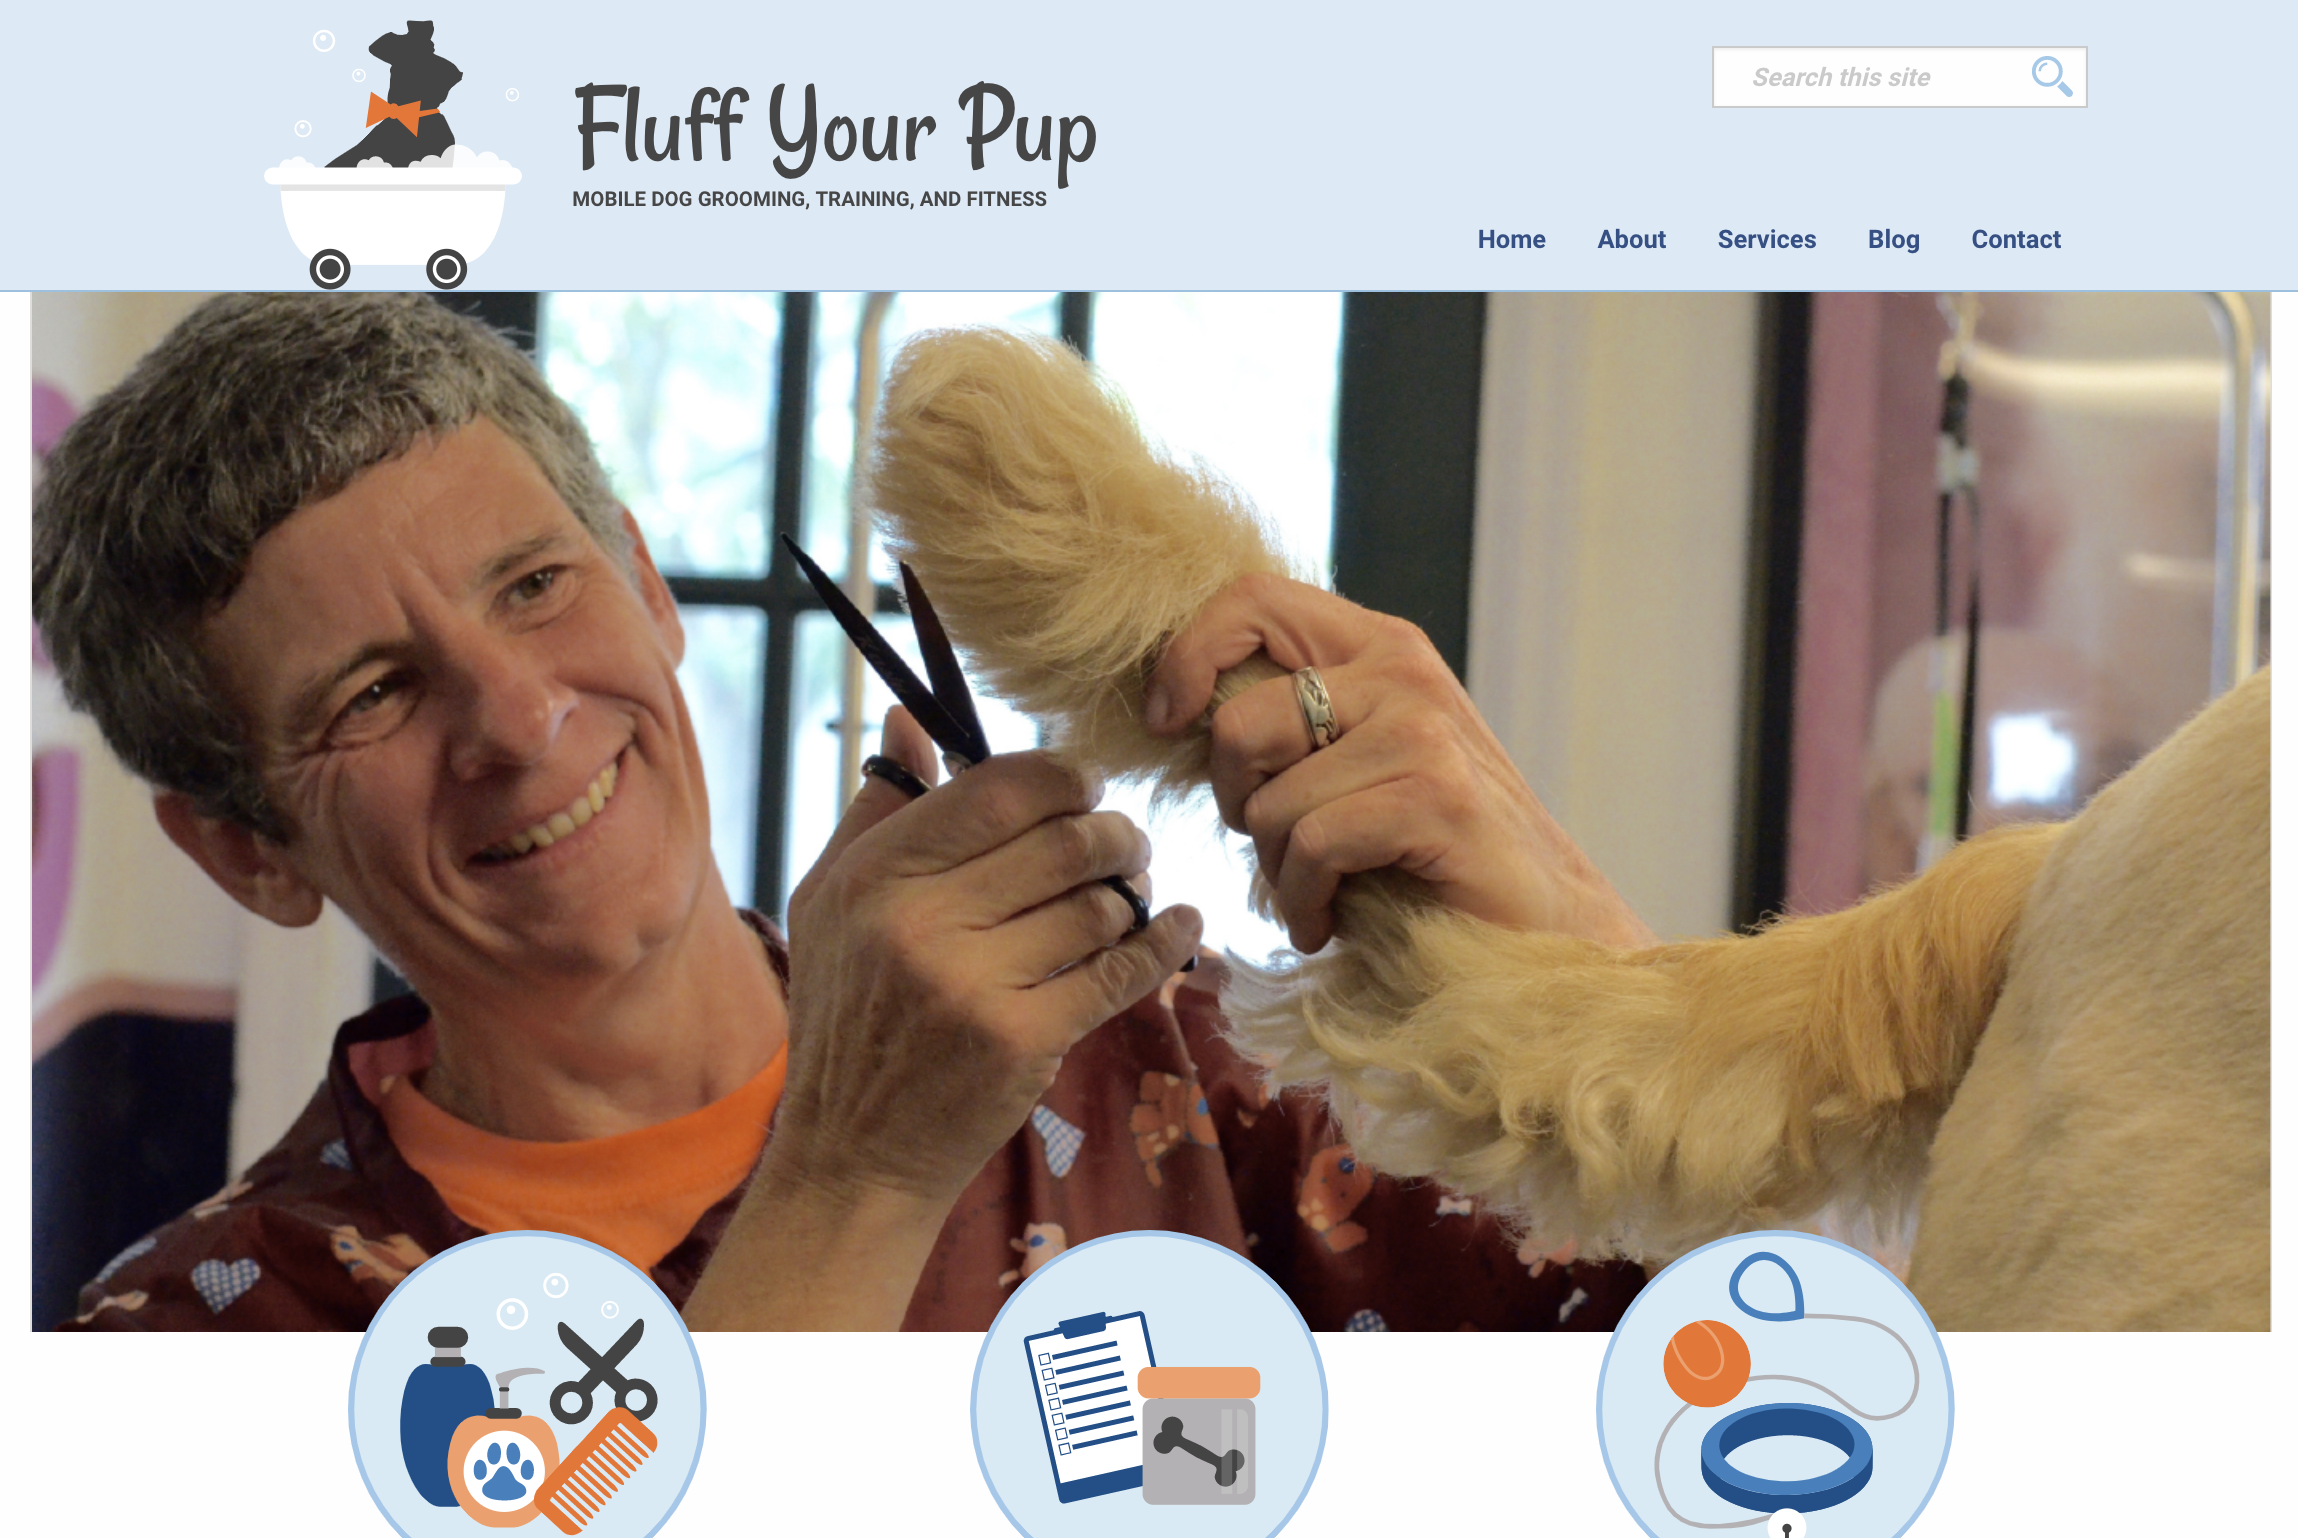 Fluff Your Pup